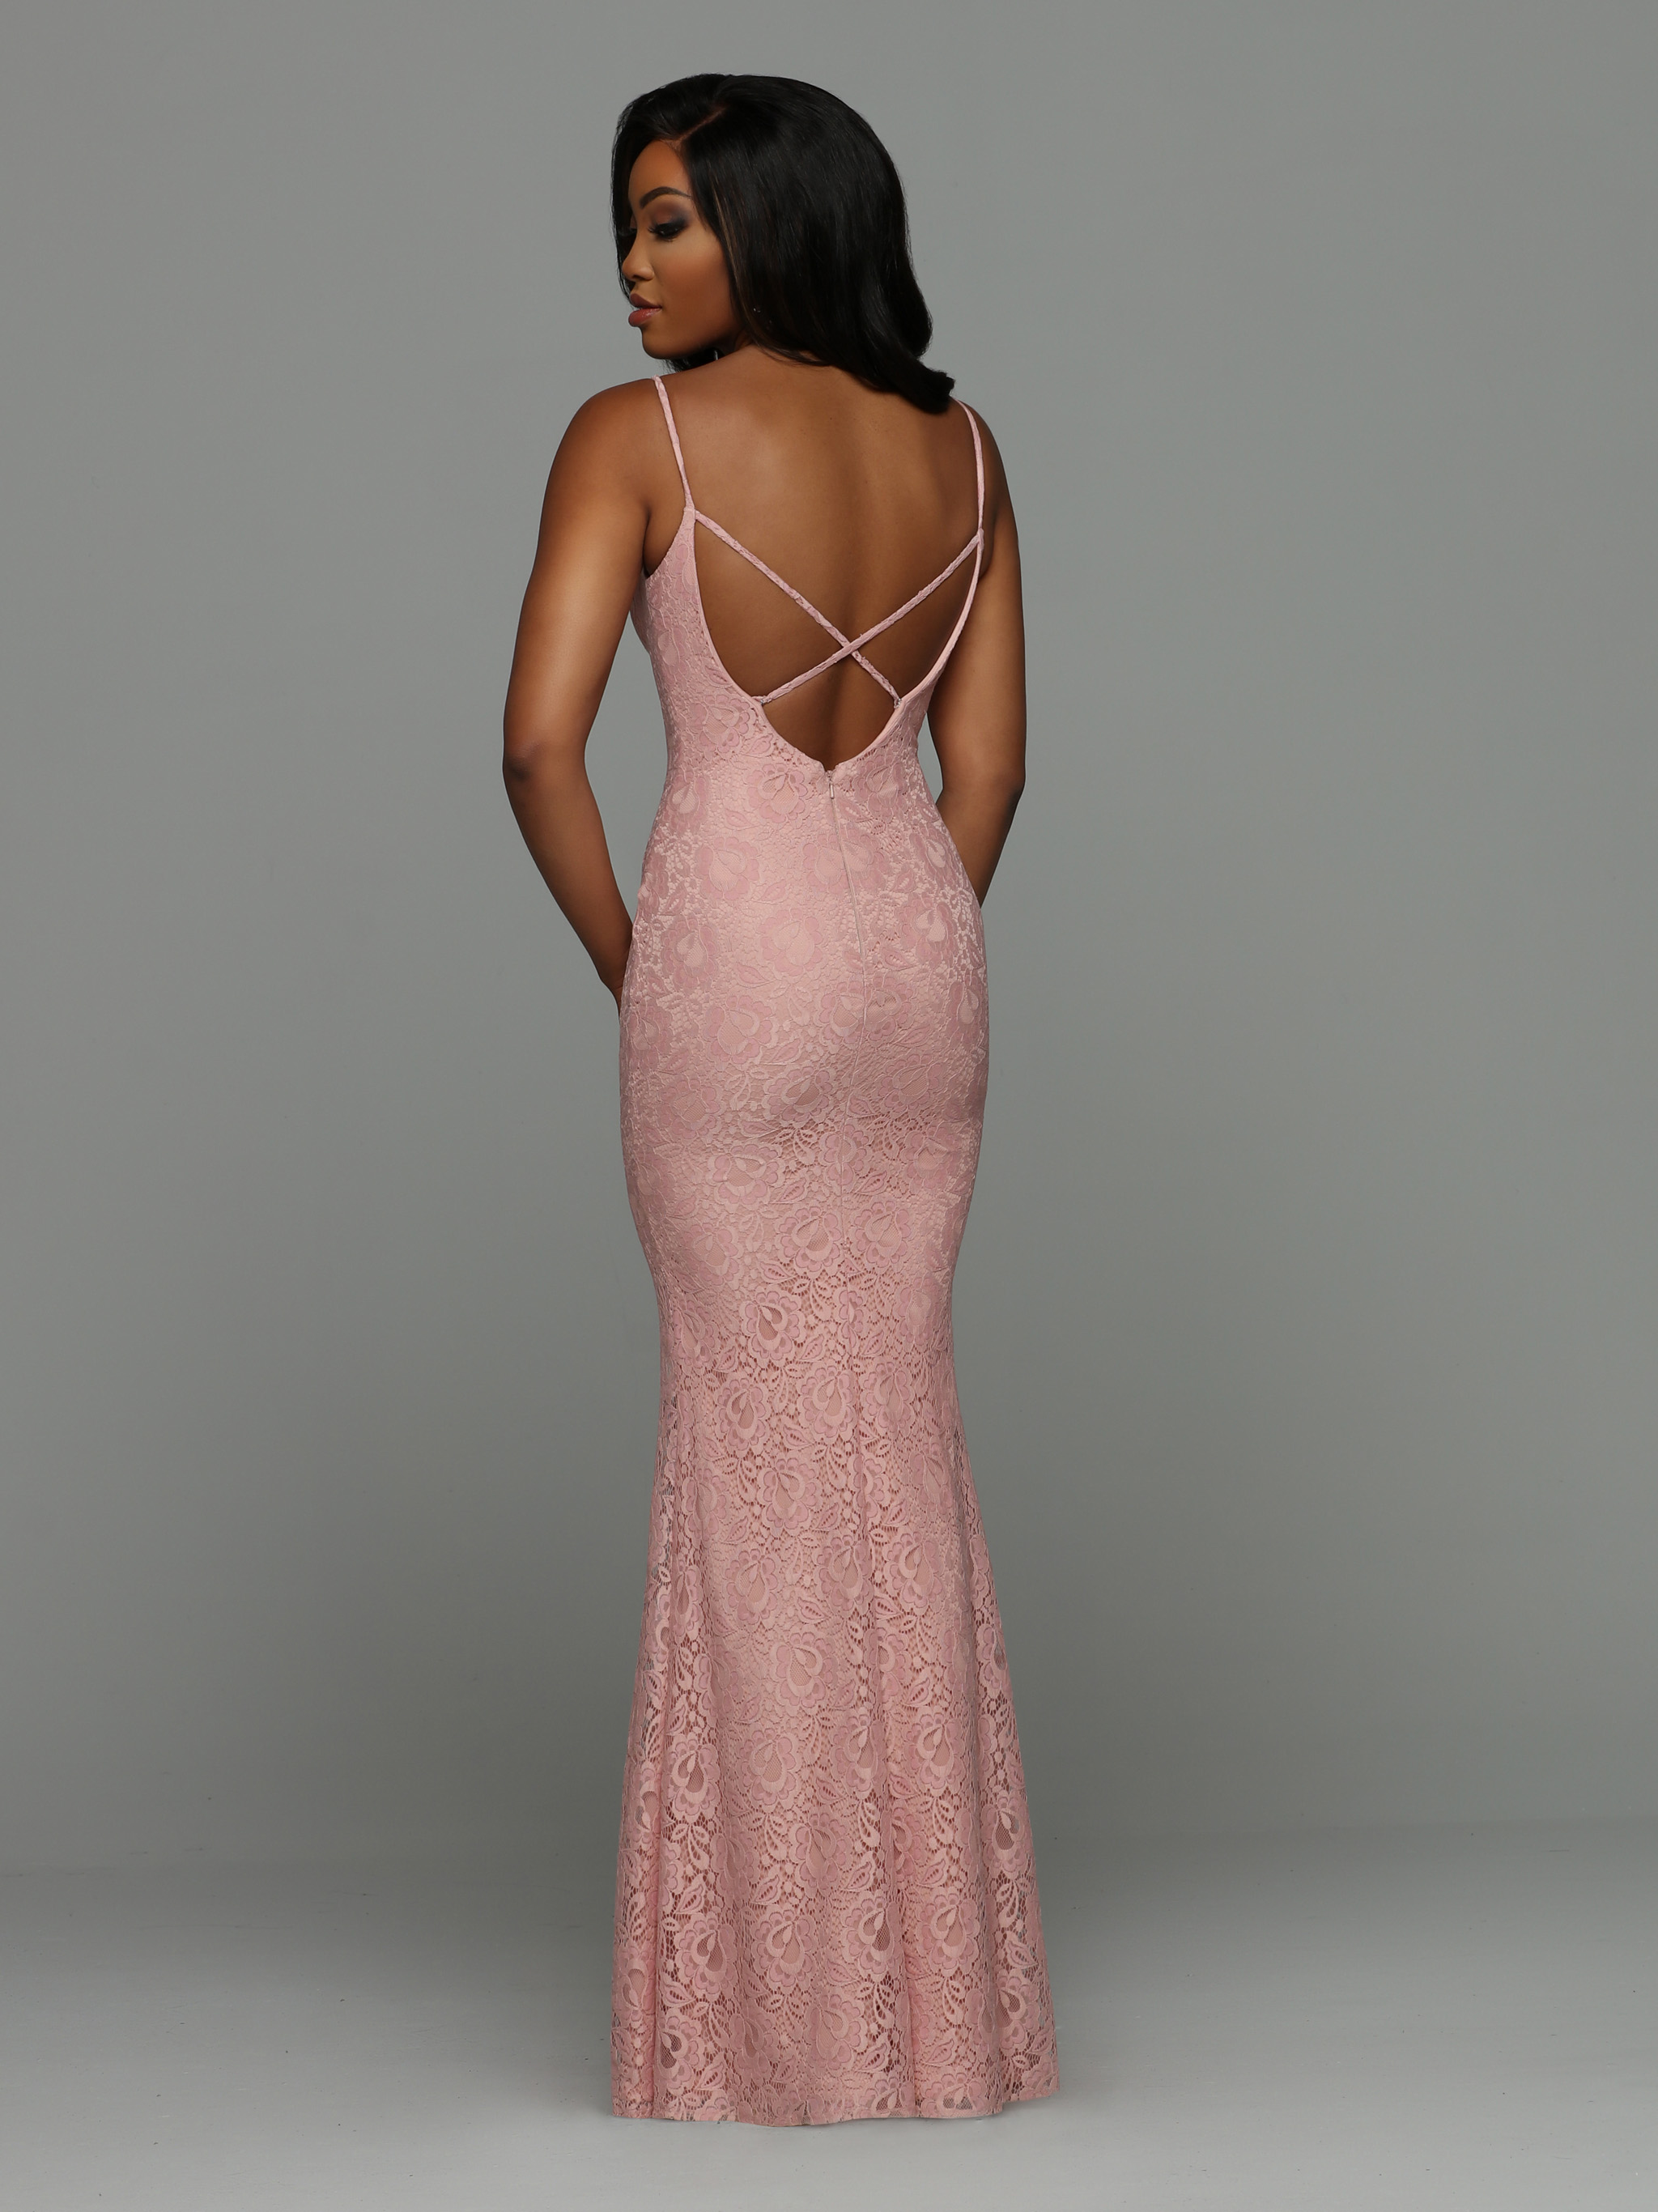 Image showing back view of style #71976